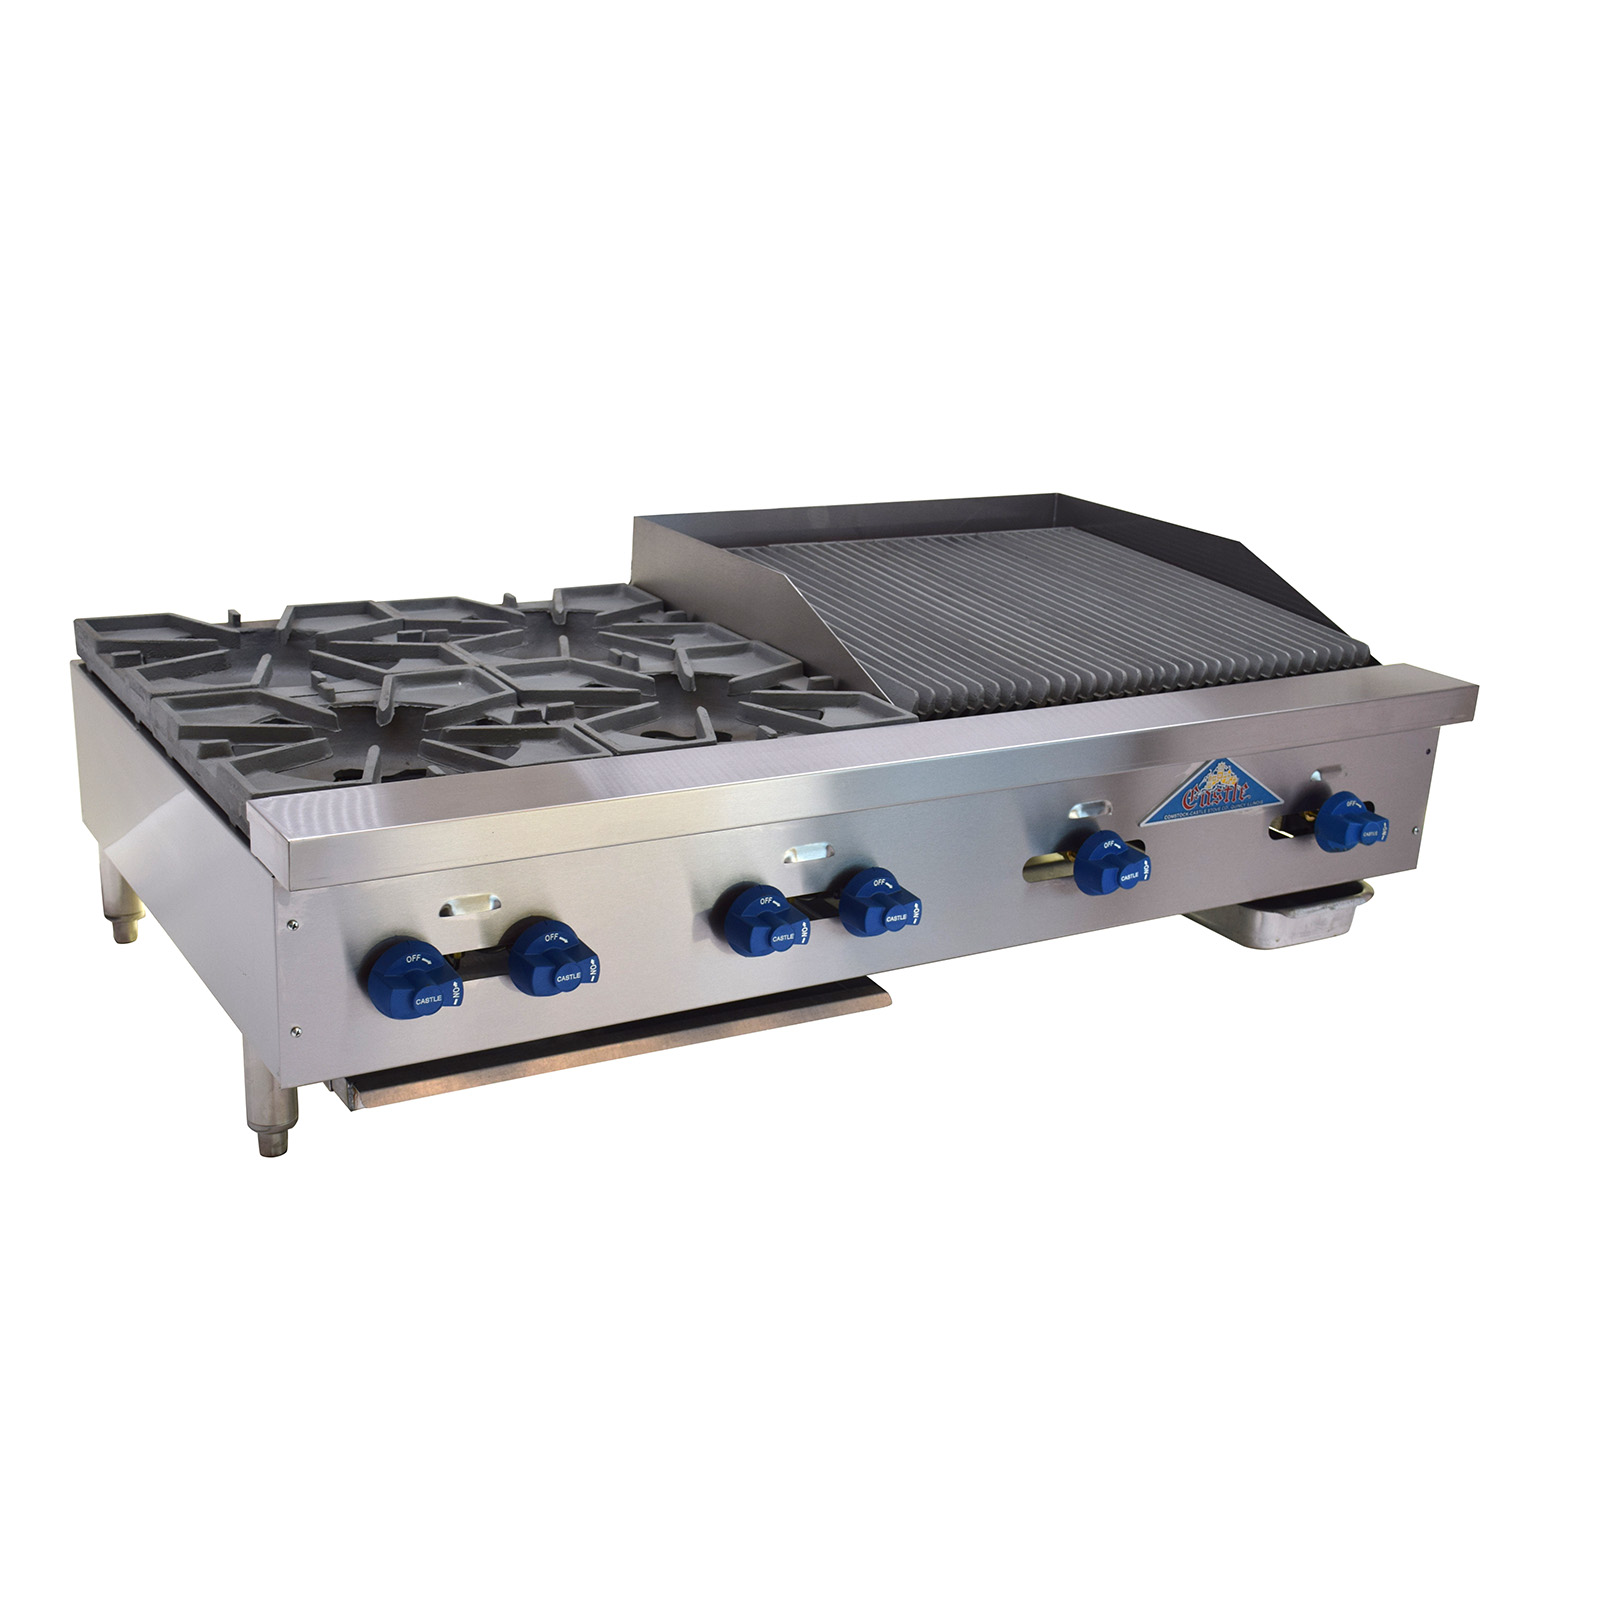 Comstock-Castle FHP48-24-2RB griddle / charbroiler, gas, countertop